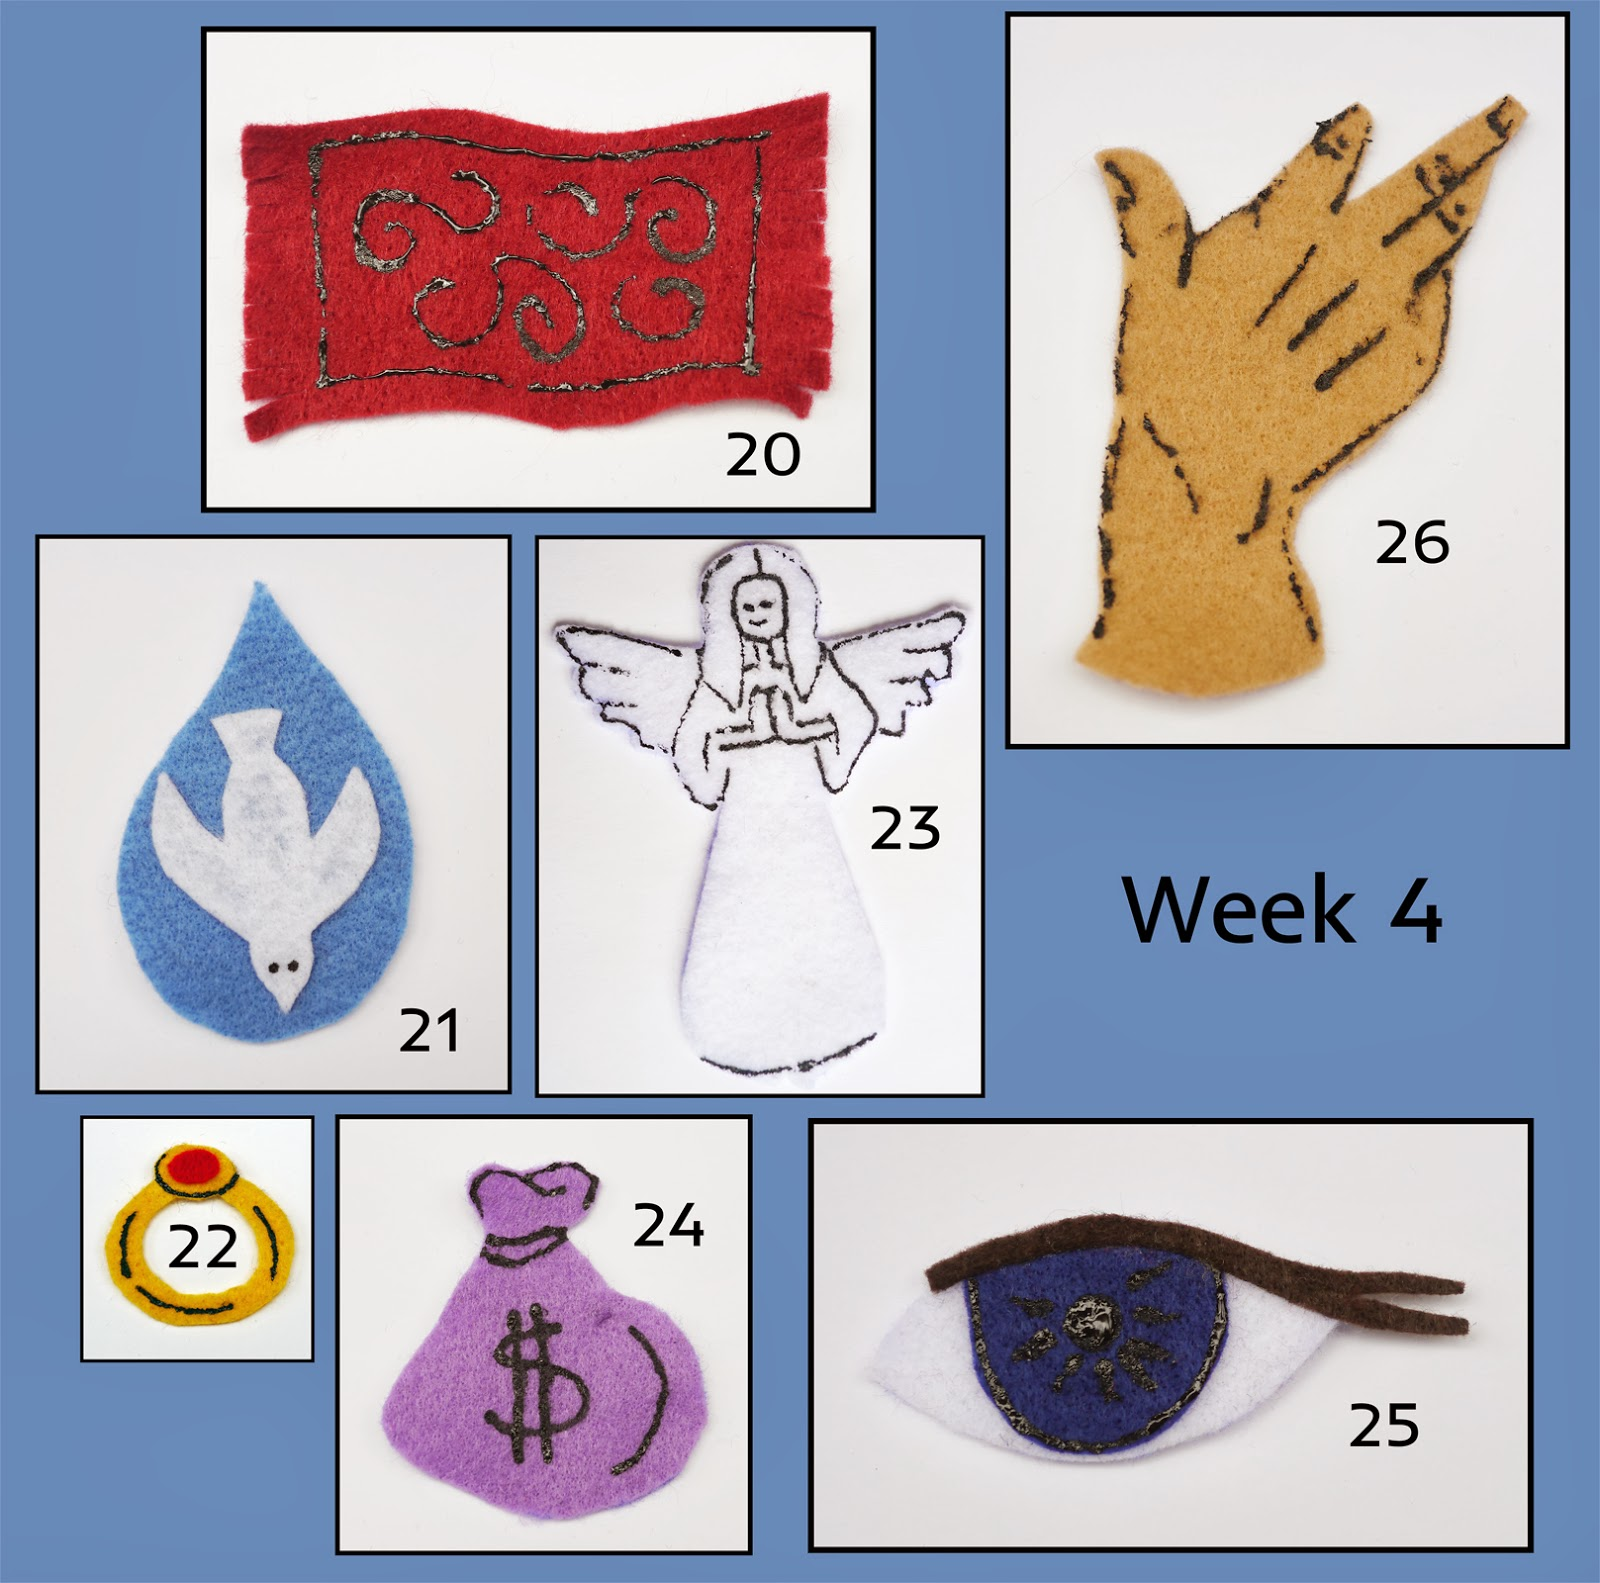 Jesus tree symbols bible readings and colouring pages symbol well reading john 44 42 ncpb the samaritan woman p123 colouring page samaritan woman at the well source calvarycurriculum biocorpaavc